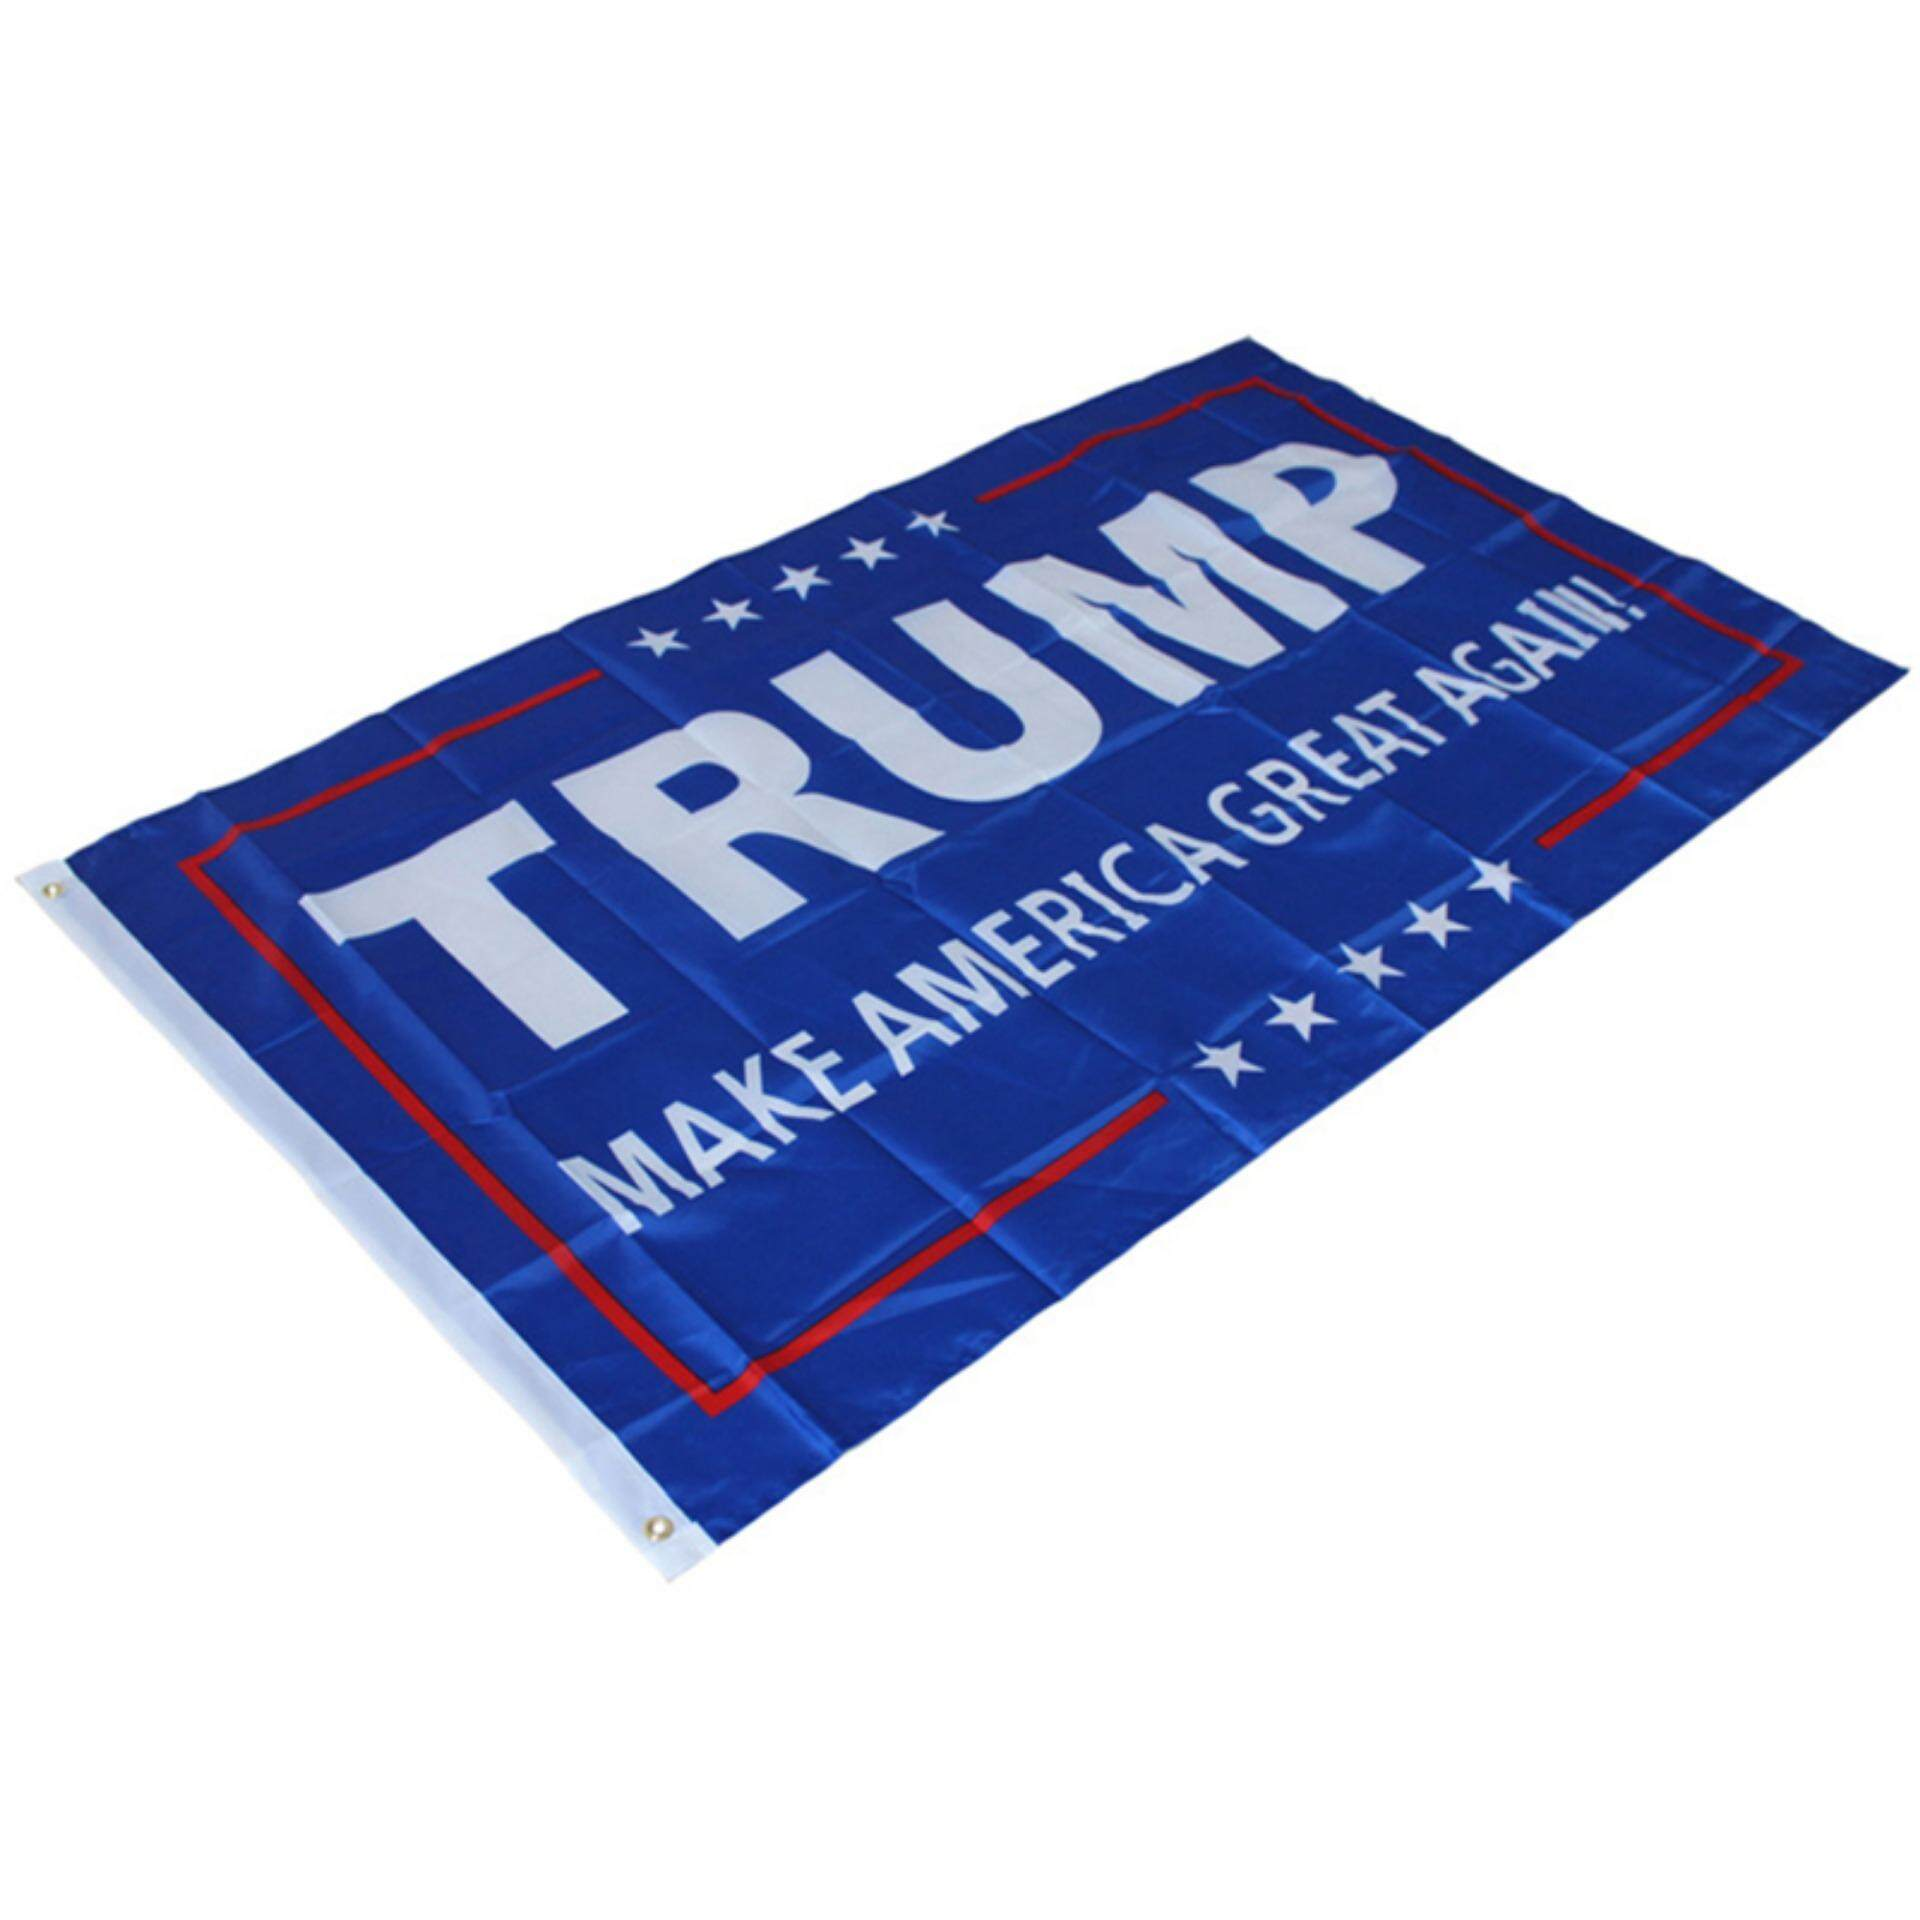 Donald J. Trump 3 X 5 Foot Flag Make America Great Again For President Whole